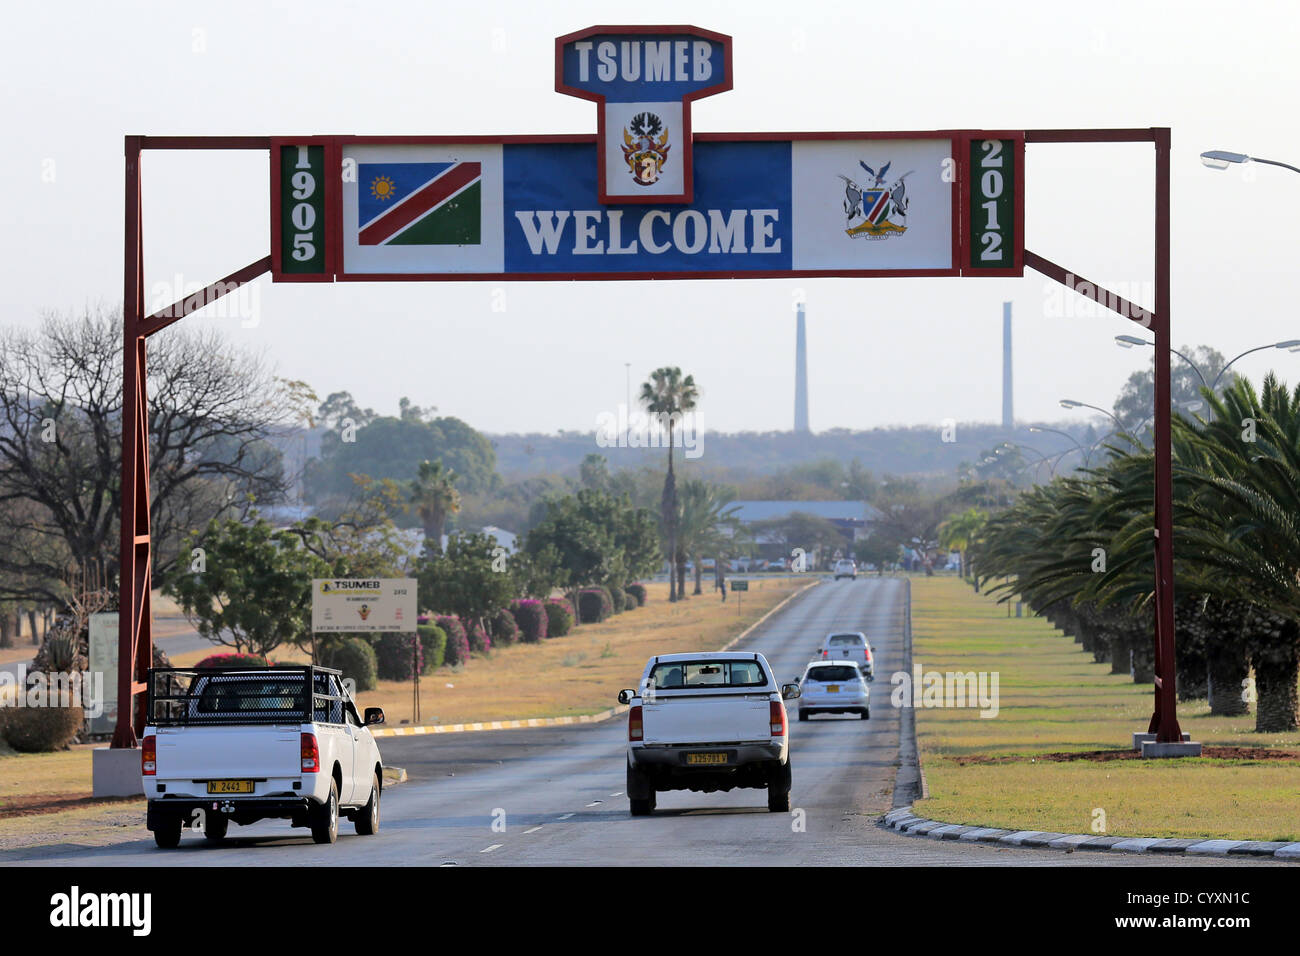 Town sign, entrance to the town Tsumeb, Namibia - Stock Image